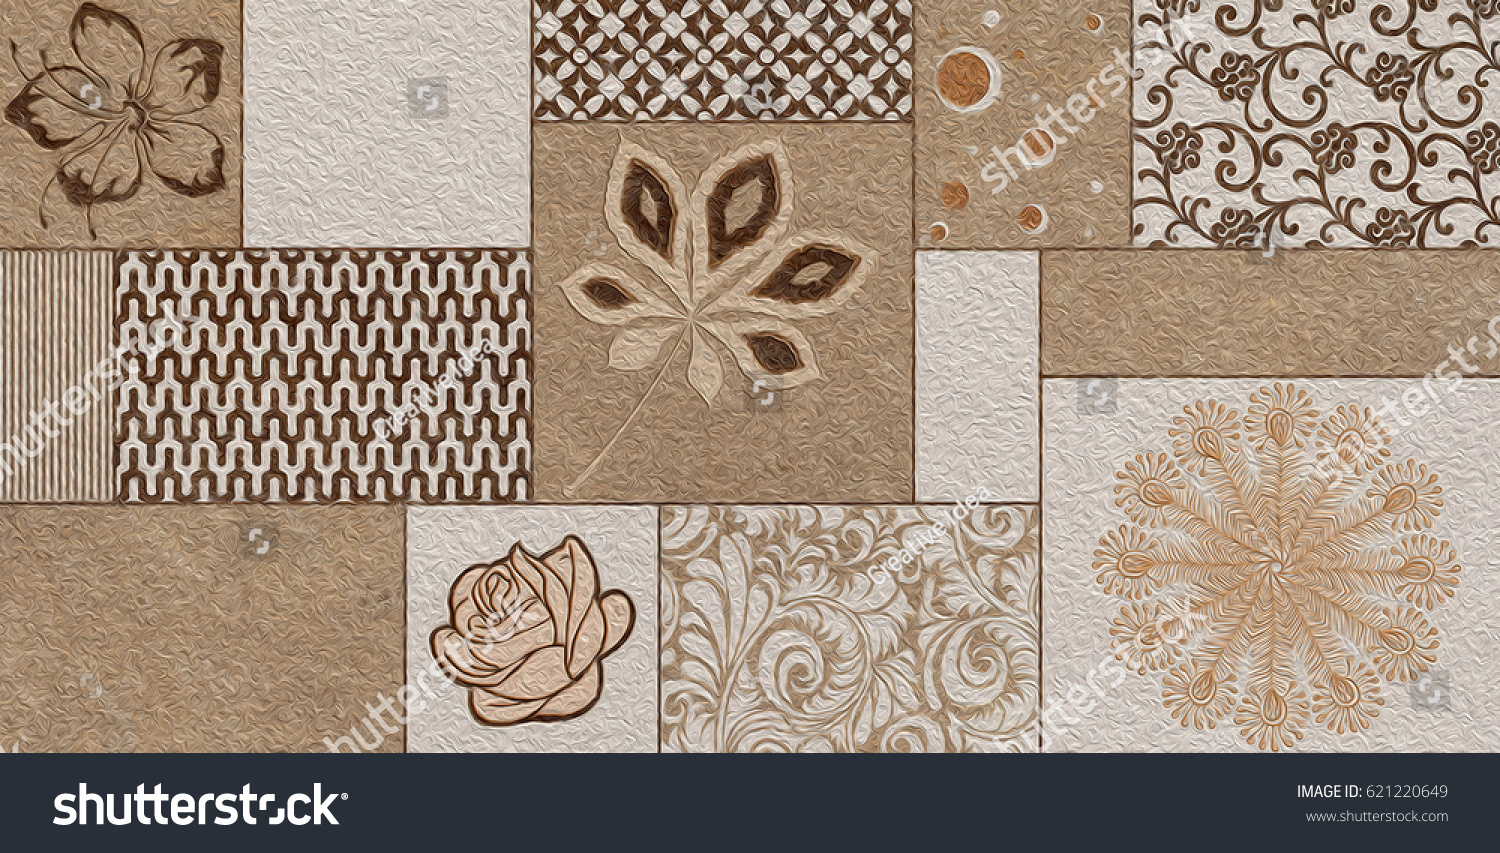 Home decorative wall tiles design background stock illustration home decorative wall tiles design background for building amipublicfo Gallery